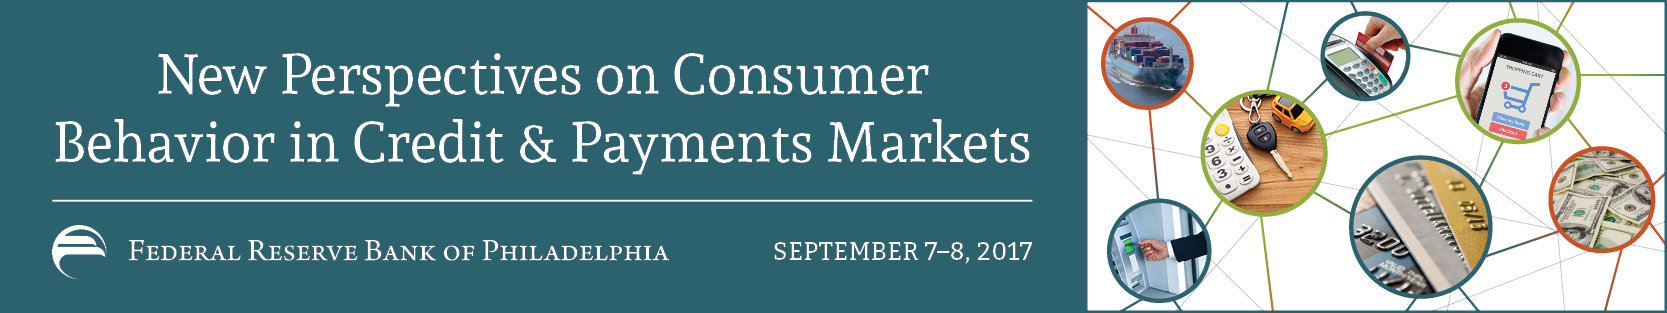 New Perspectives on Consumer Behavior in Credit and Payments Markets